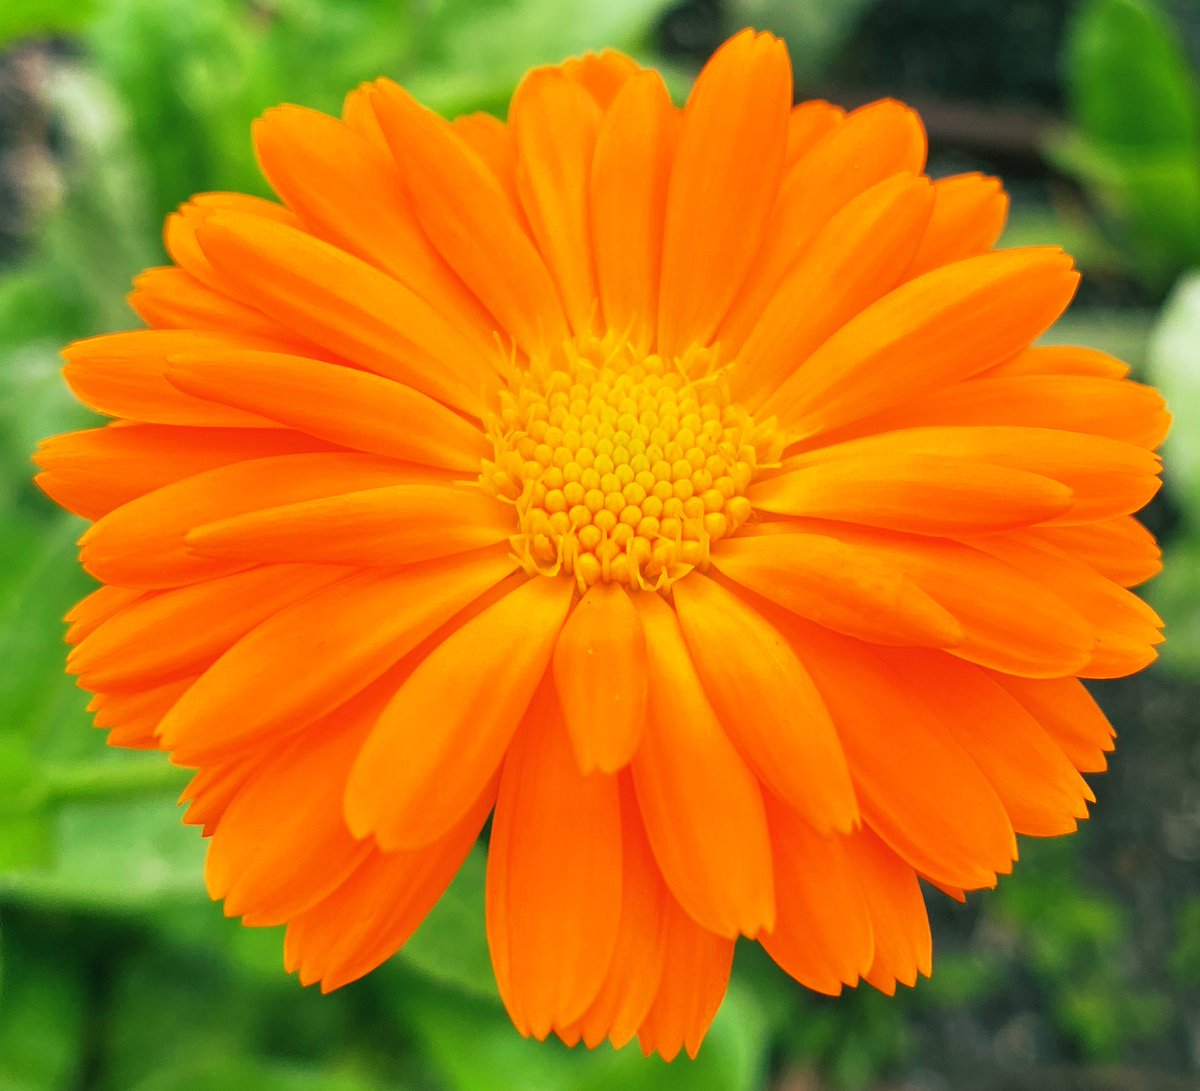 MariGOLD 😁 A flower to brighten anyone's day! #flowers #plants #happy #nature #gardening #orange